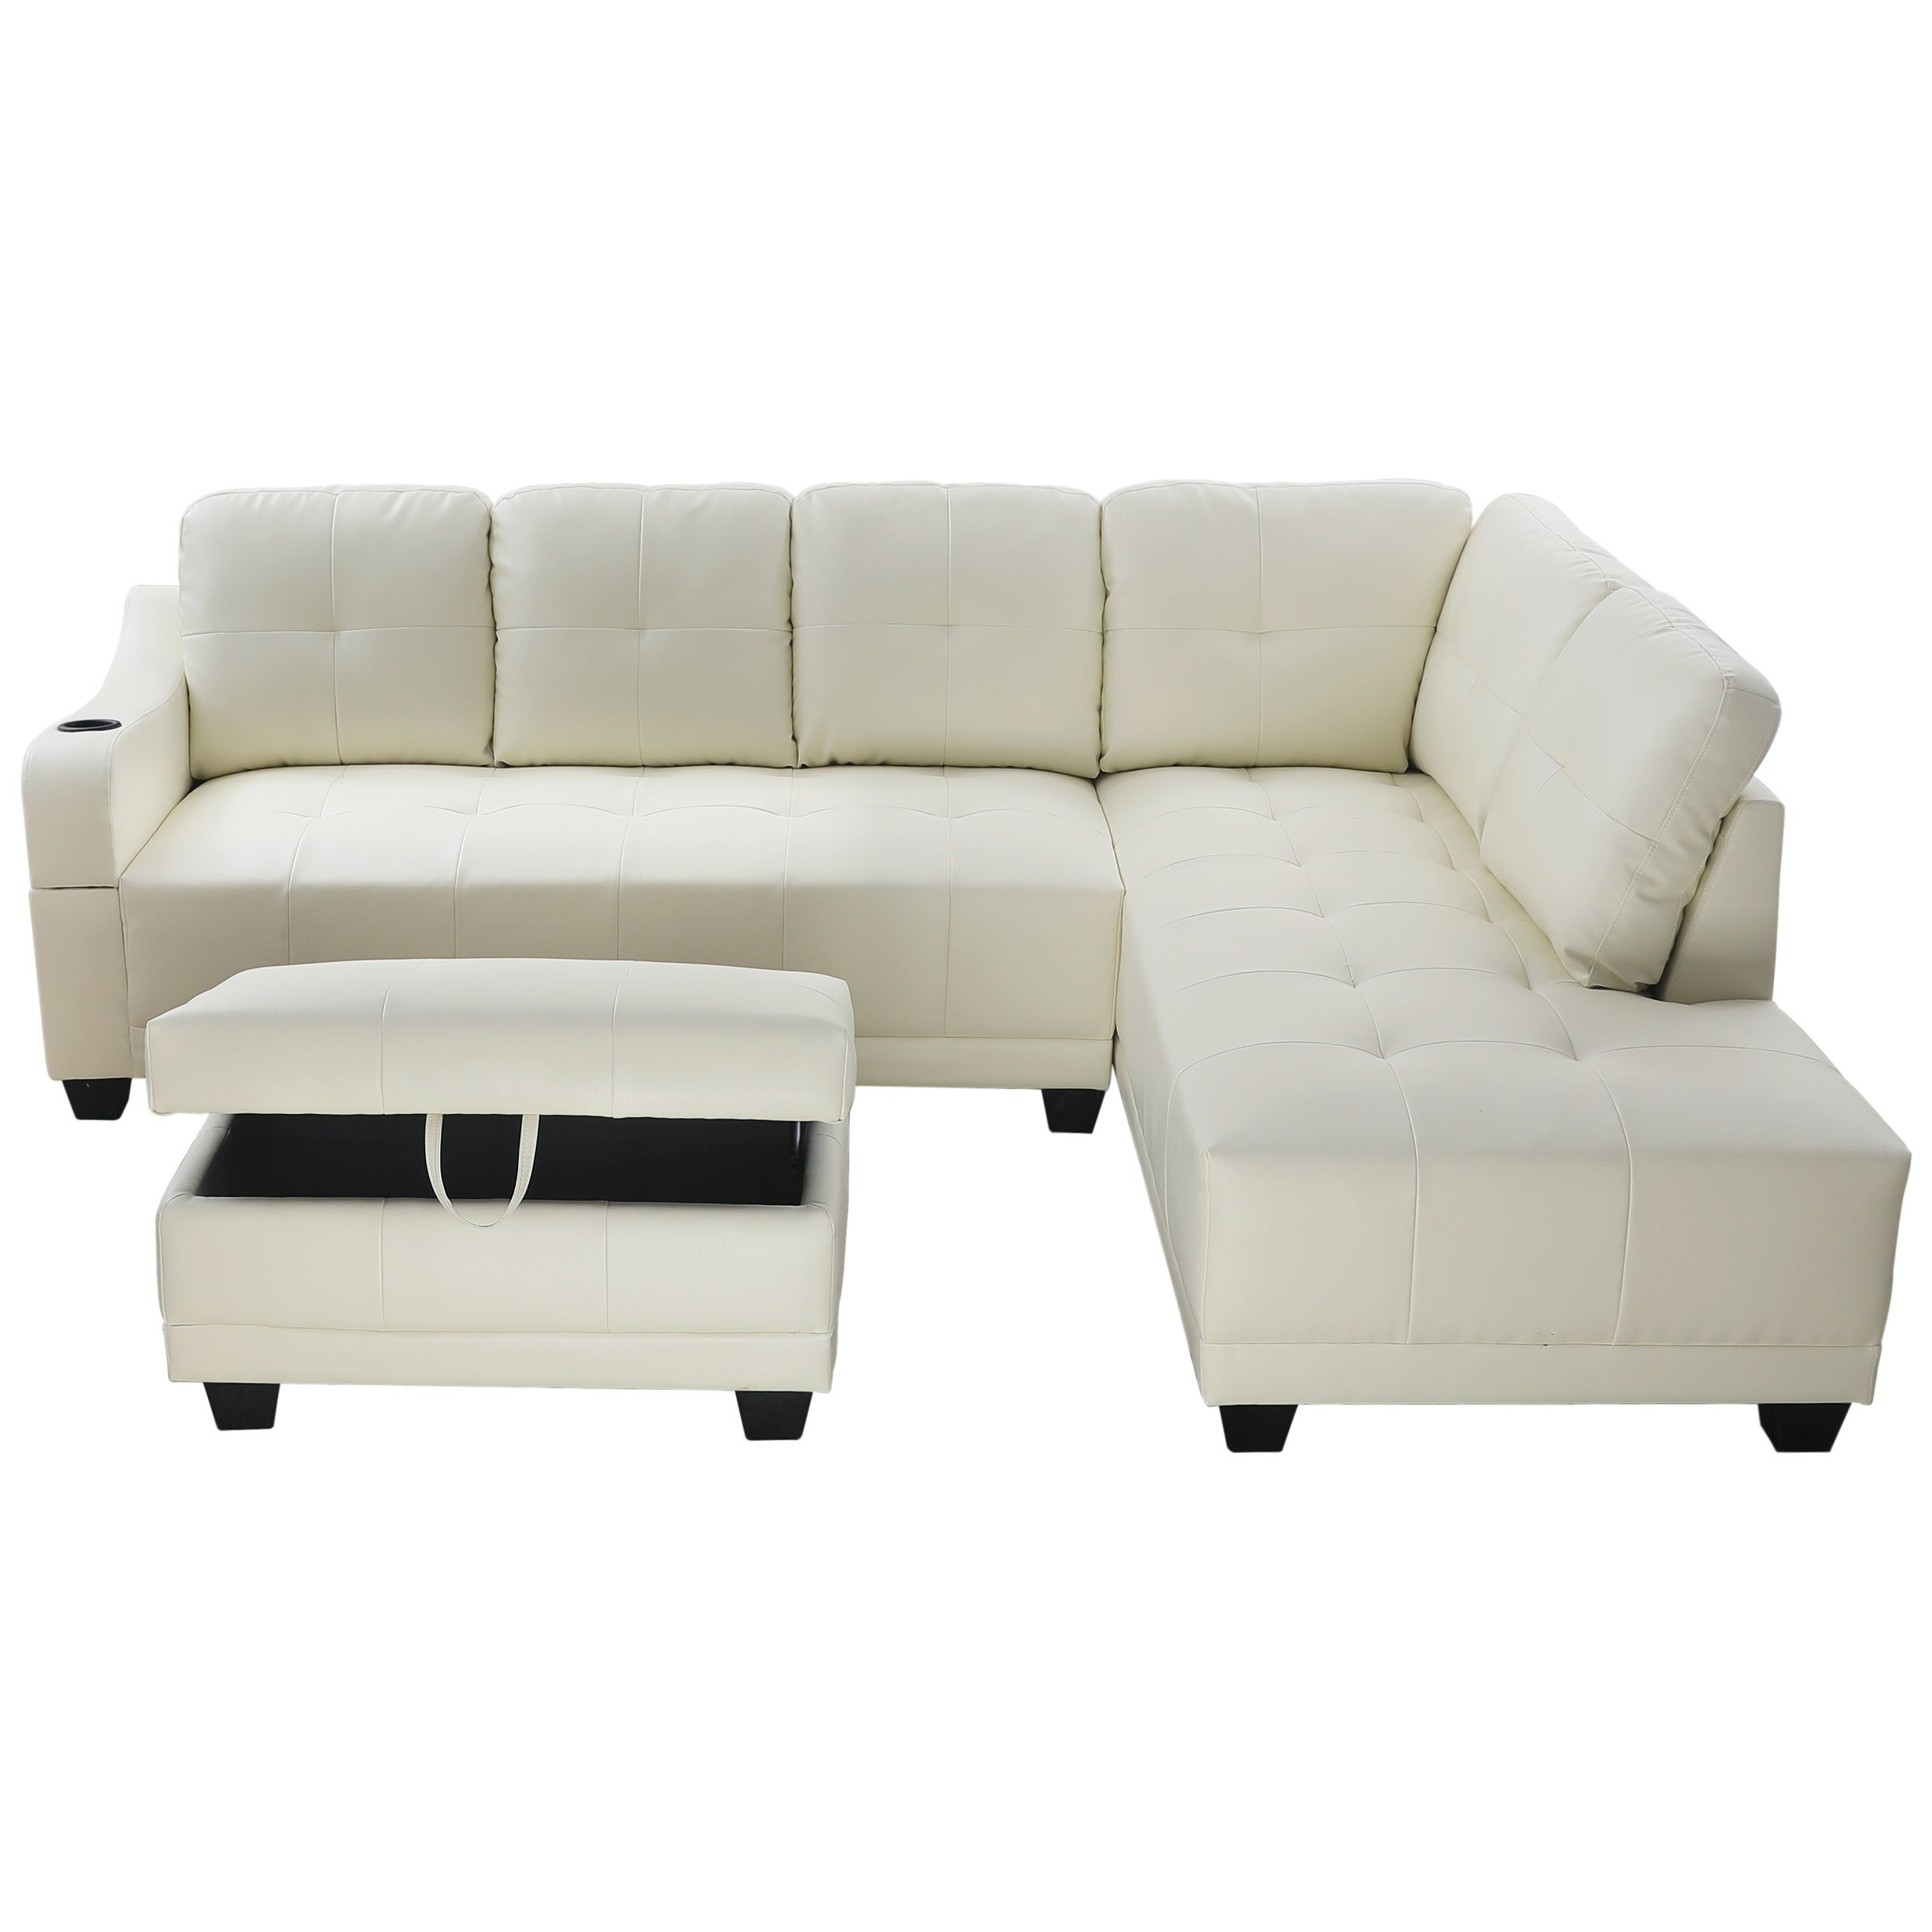 Details about AYCP Furniture Faux Leather Sectional Sofa with Storage